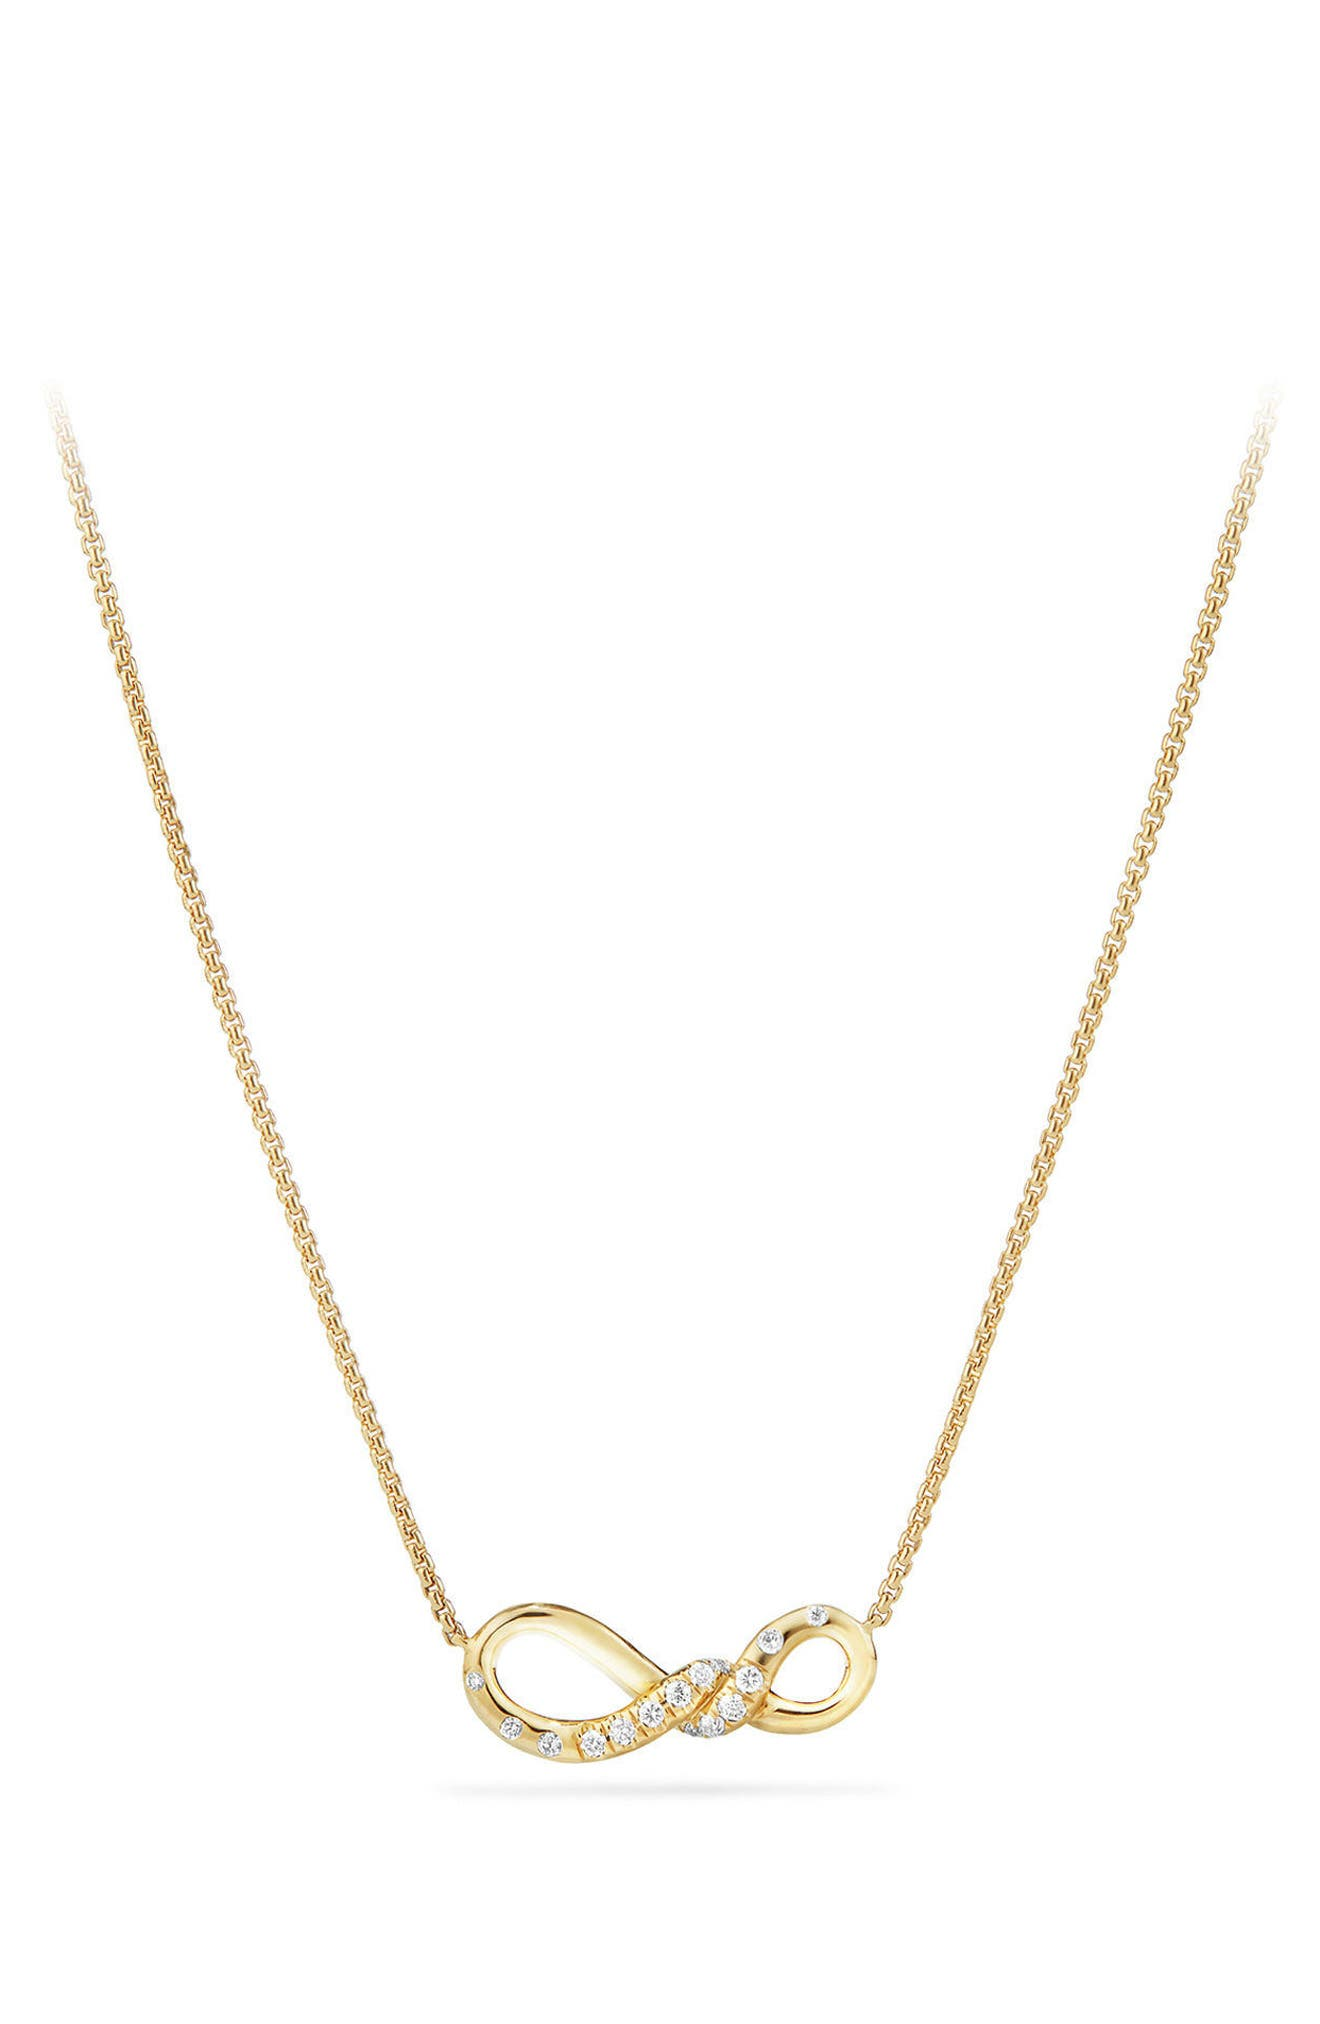 Continuance Pendant Necklace in 18K Gold with Diamonds,                             Main thumbnail 1, color,                             YELLOW GOLD